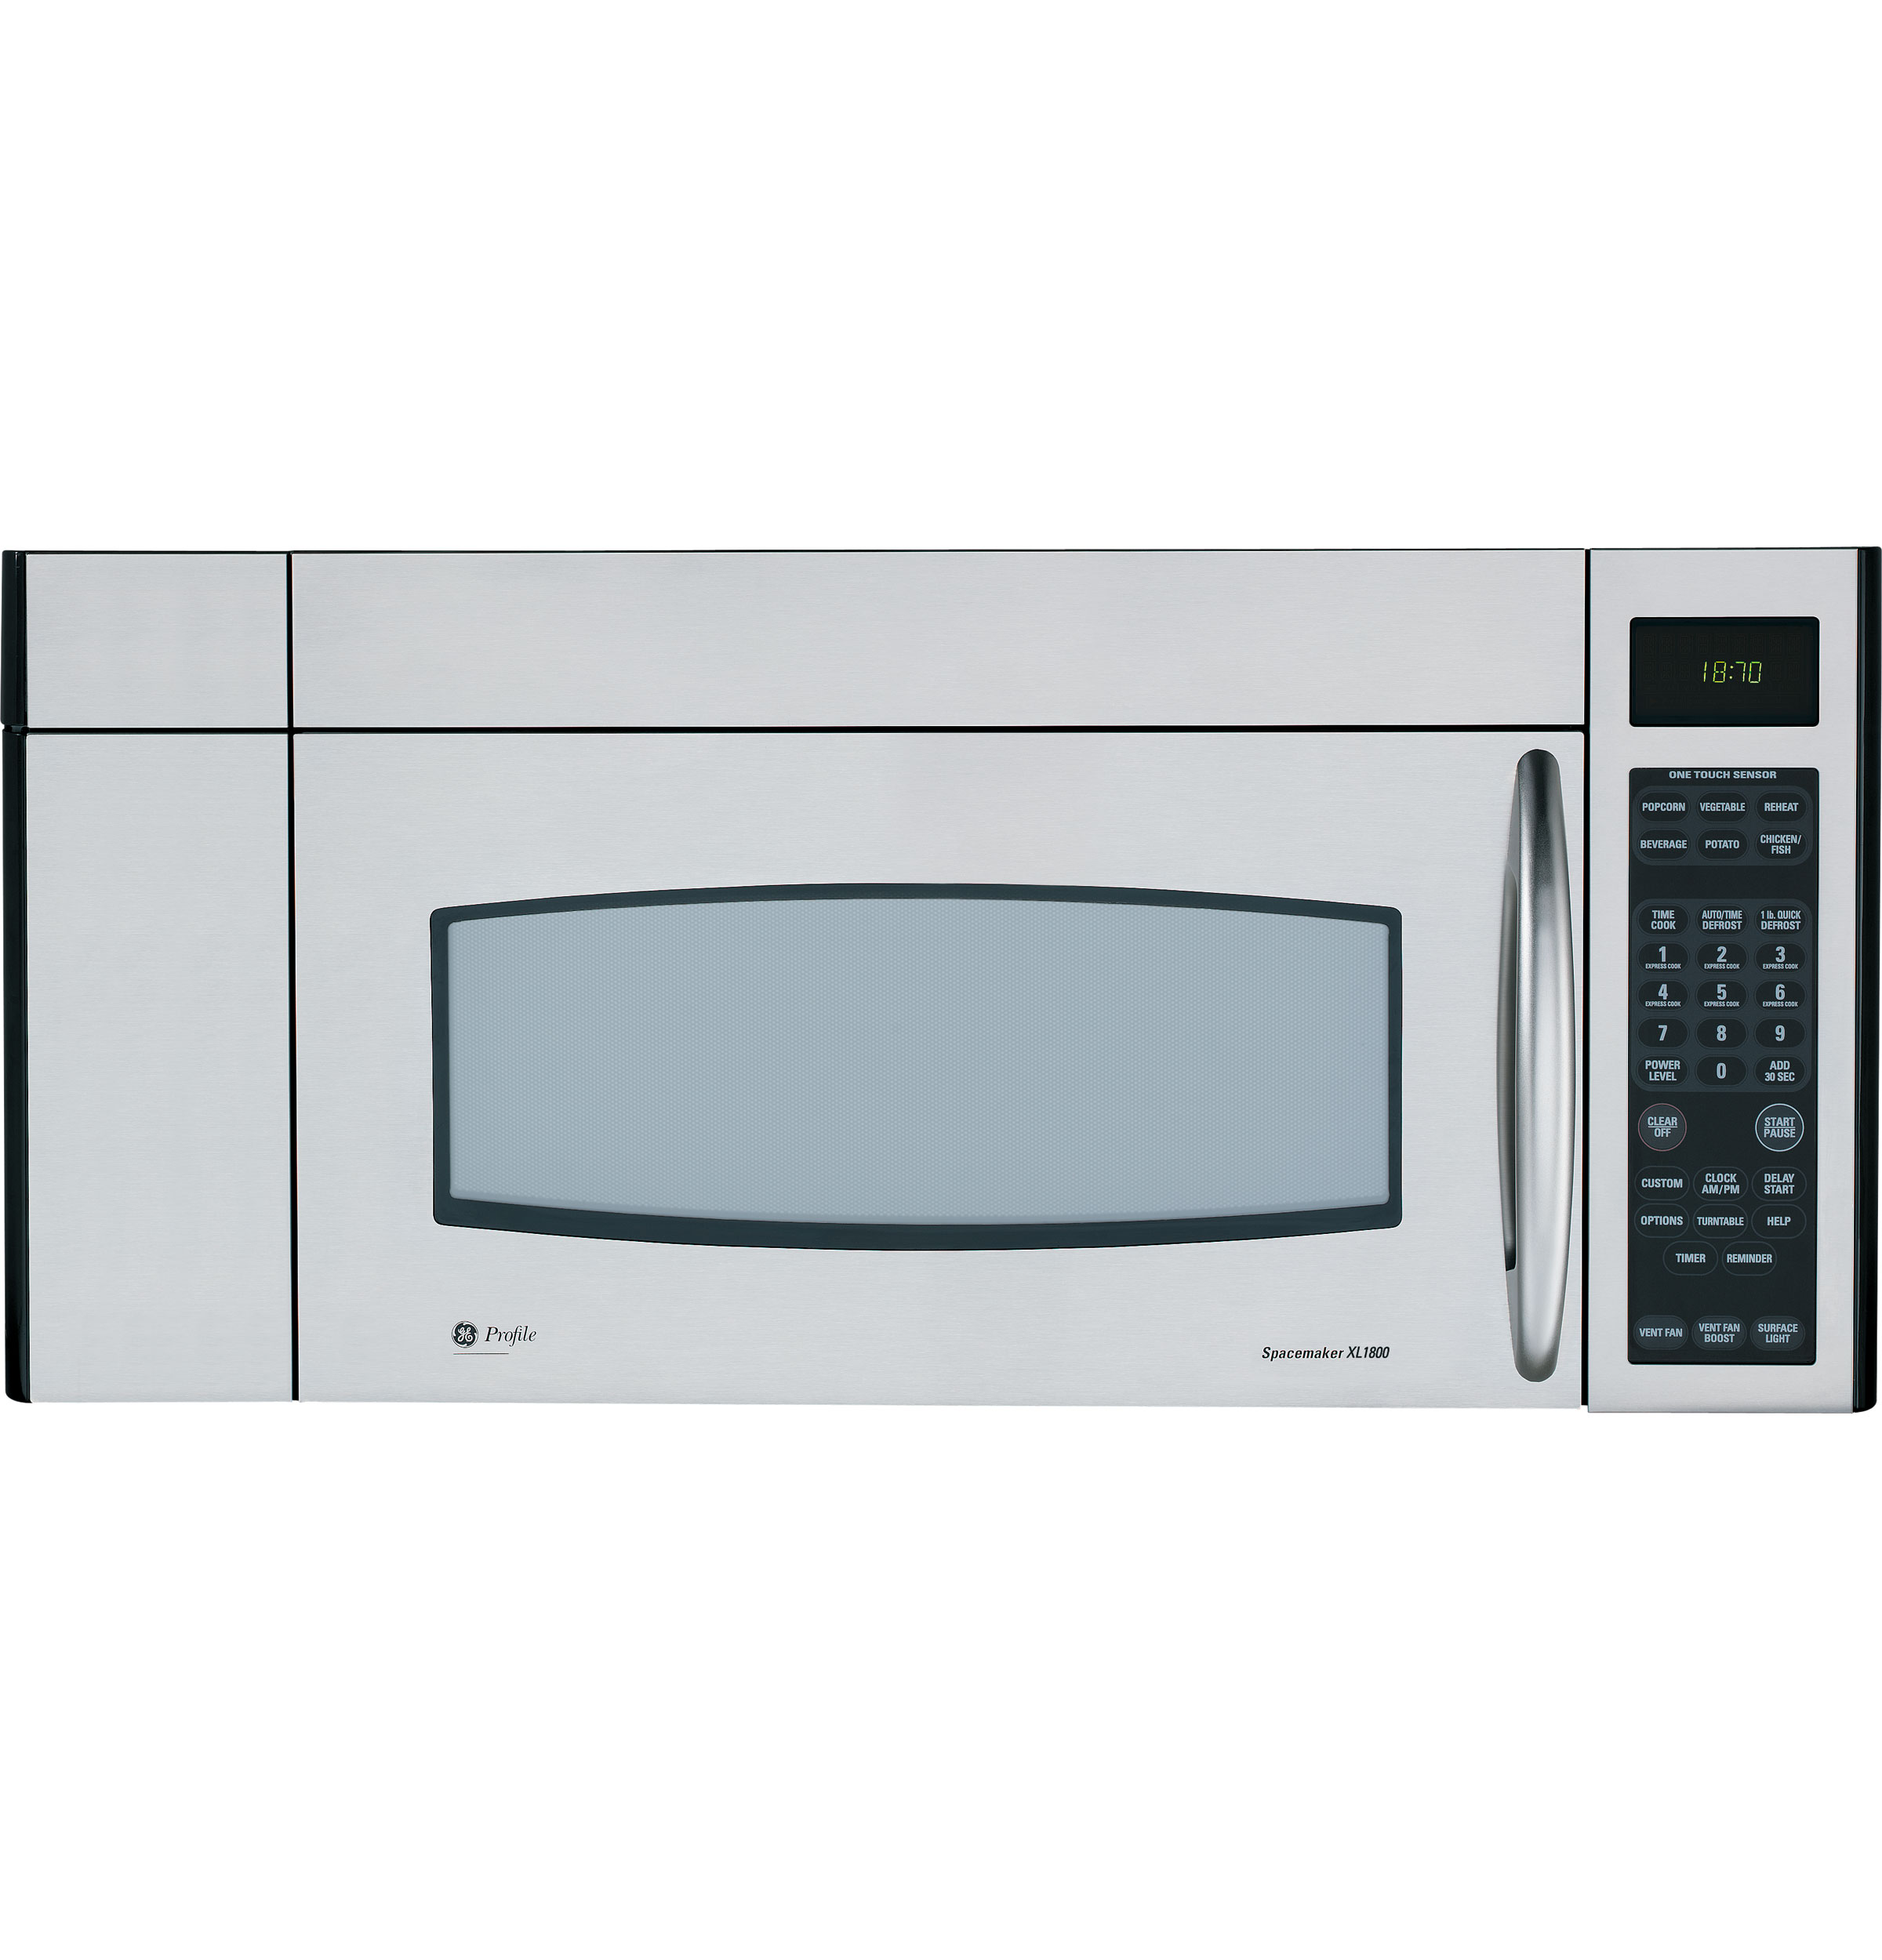 Ge Profile Emaker Xl 1800 36 Microwave Oven